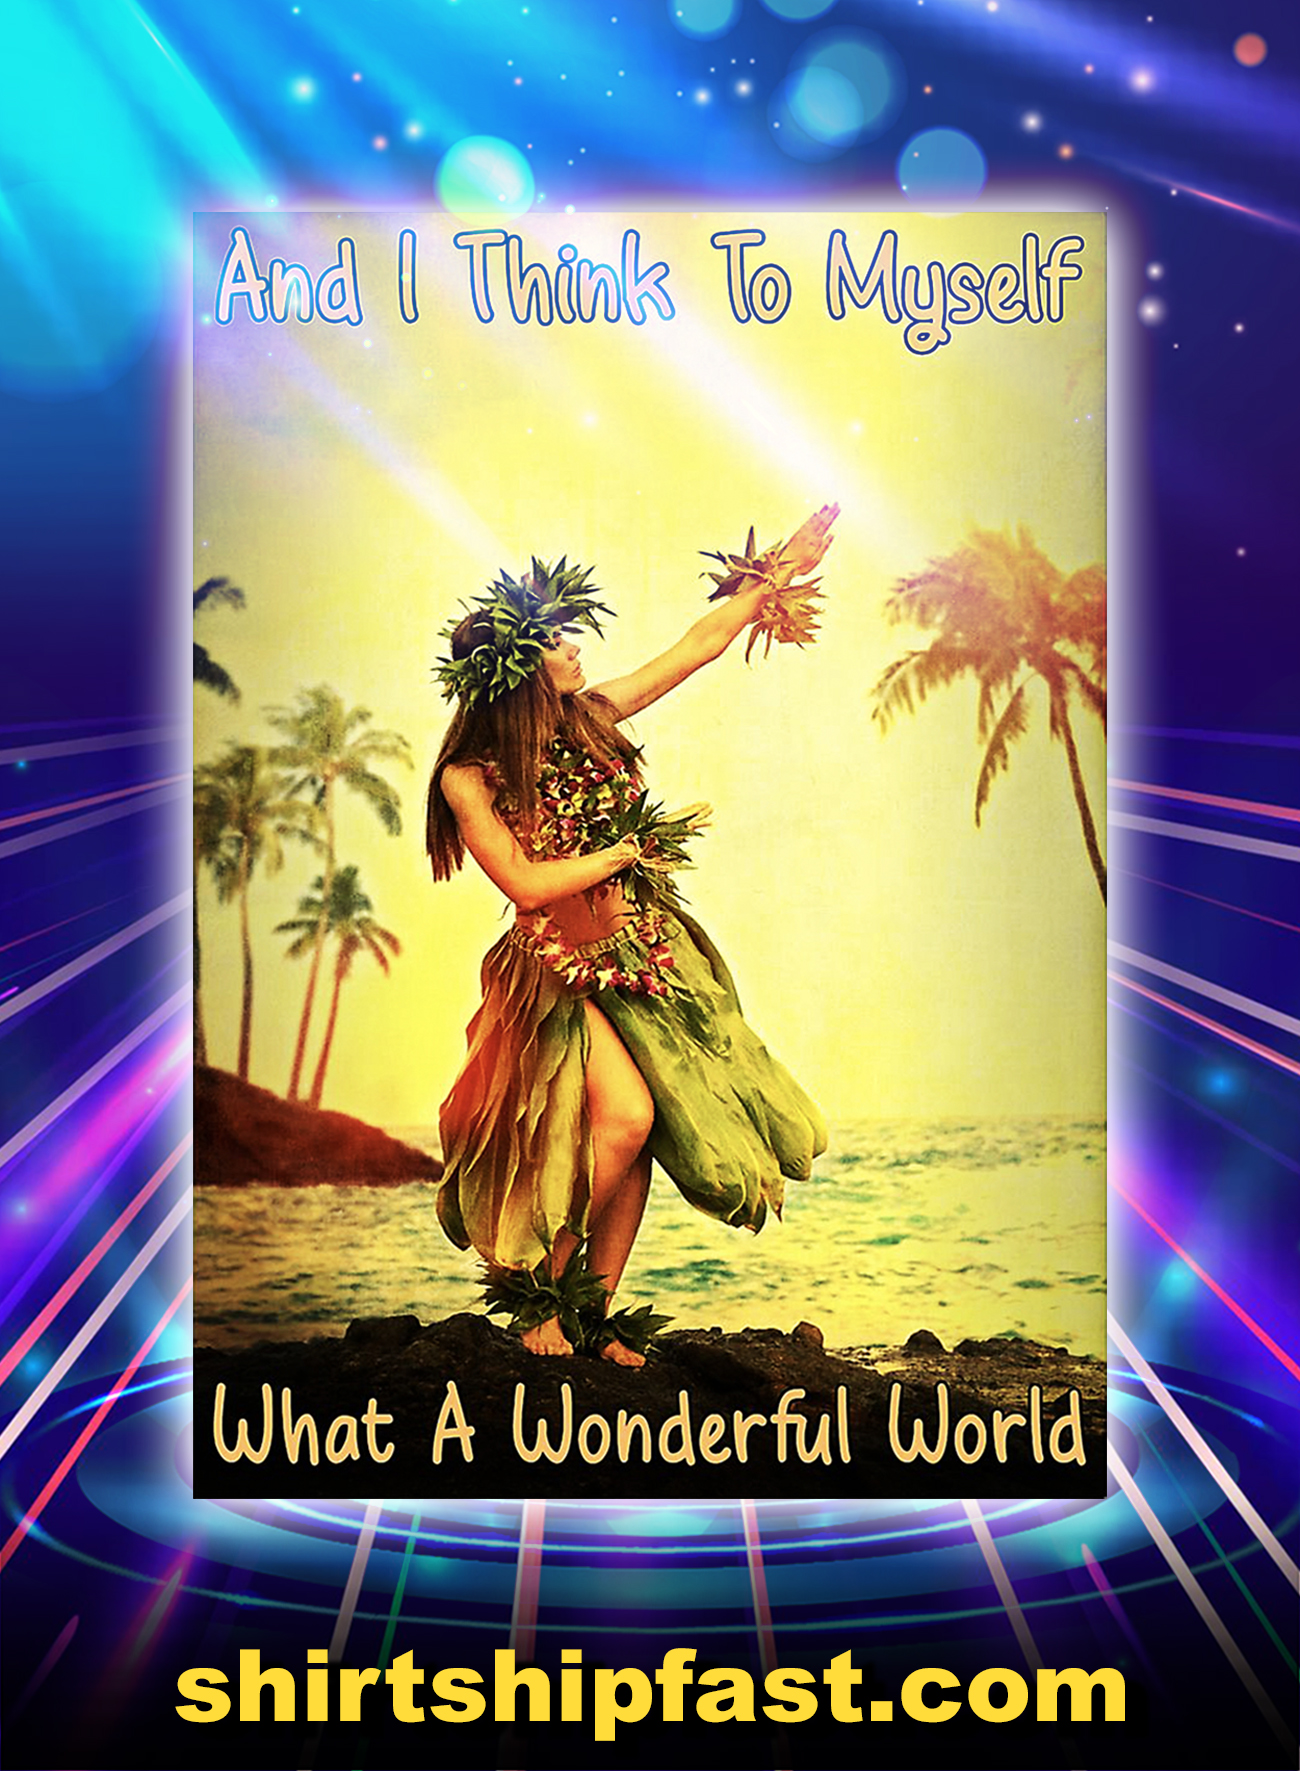 Hawaii girl and i think to myself what a wonderful world poster - A1